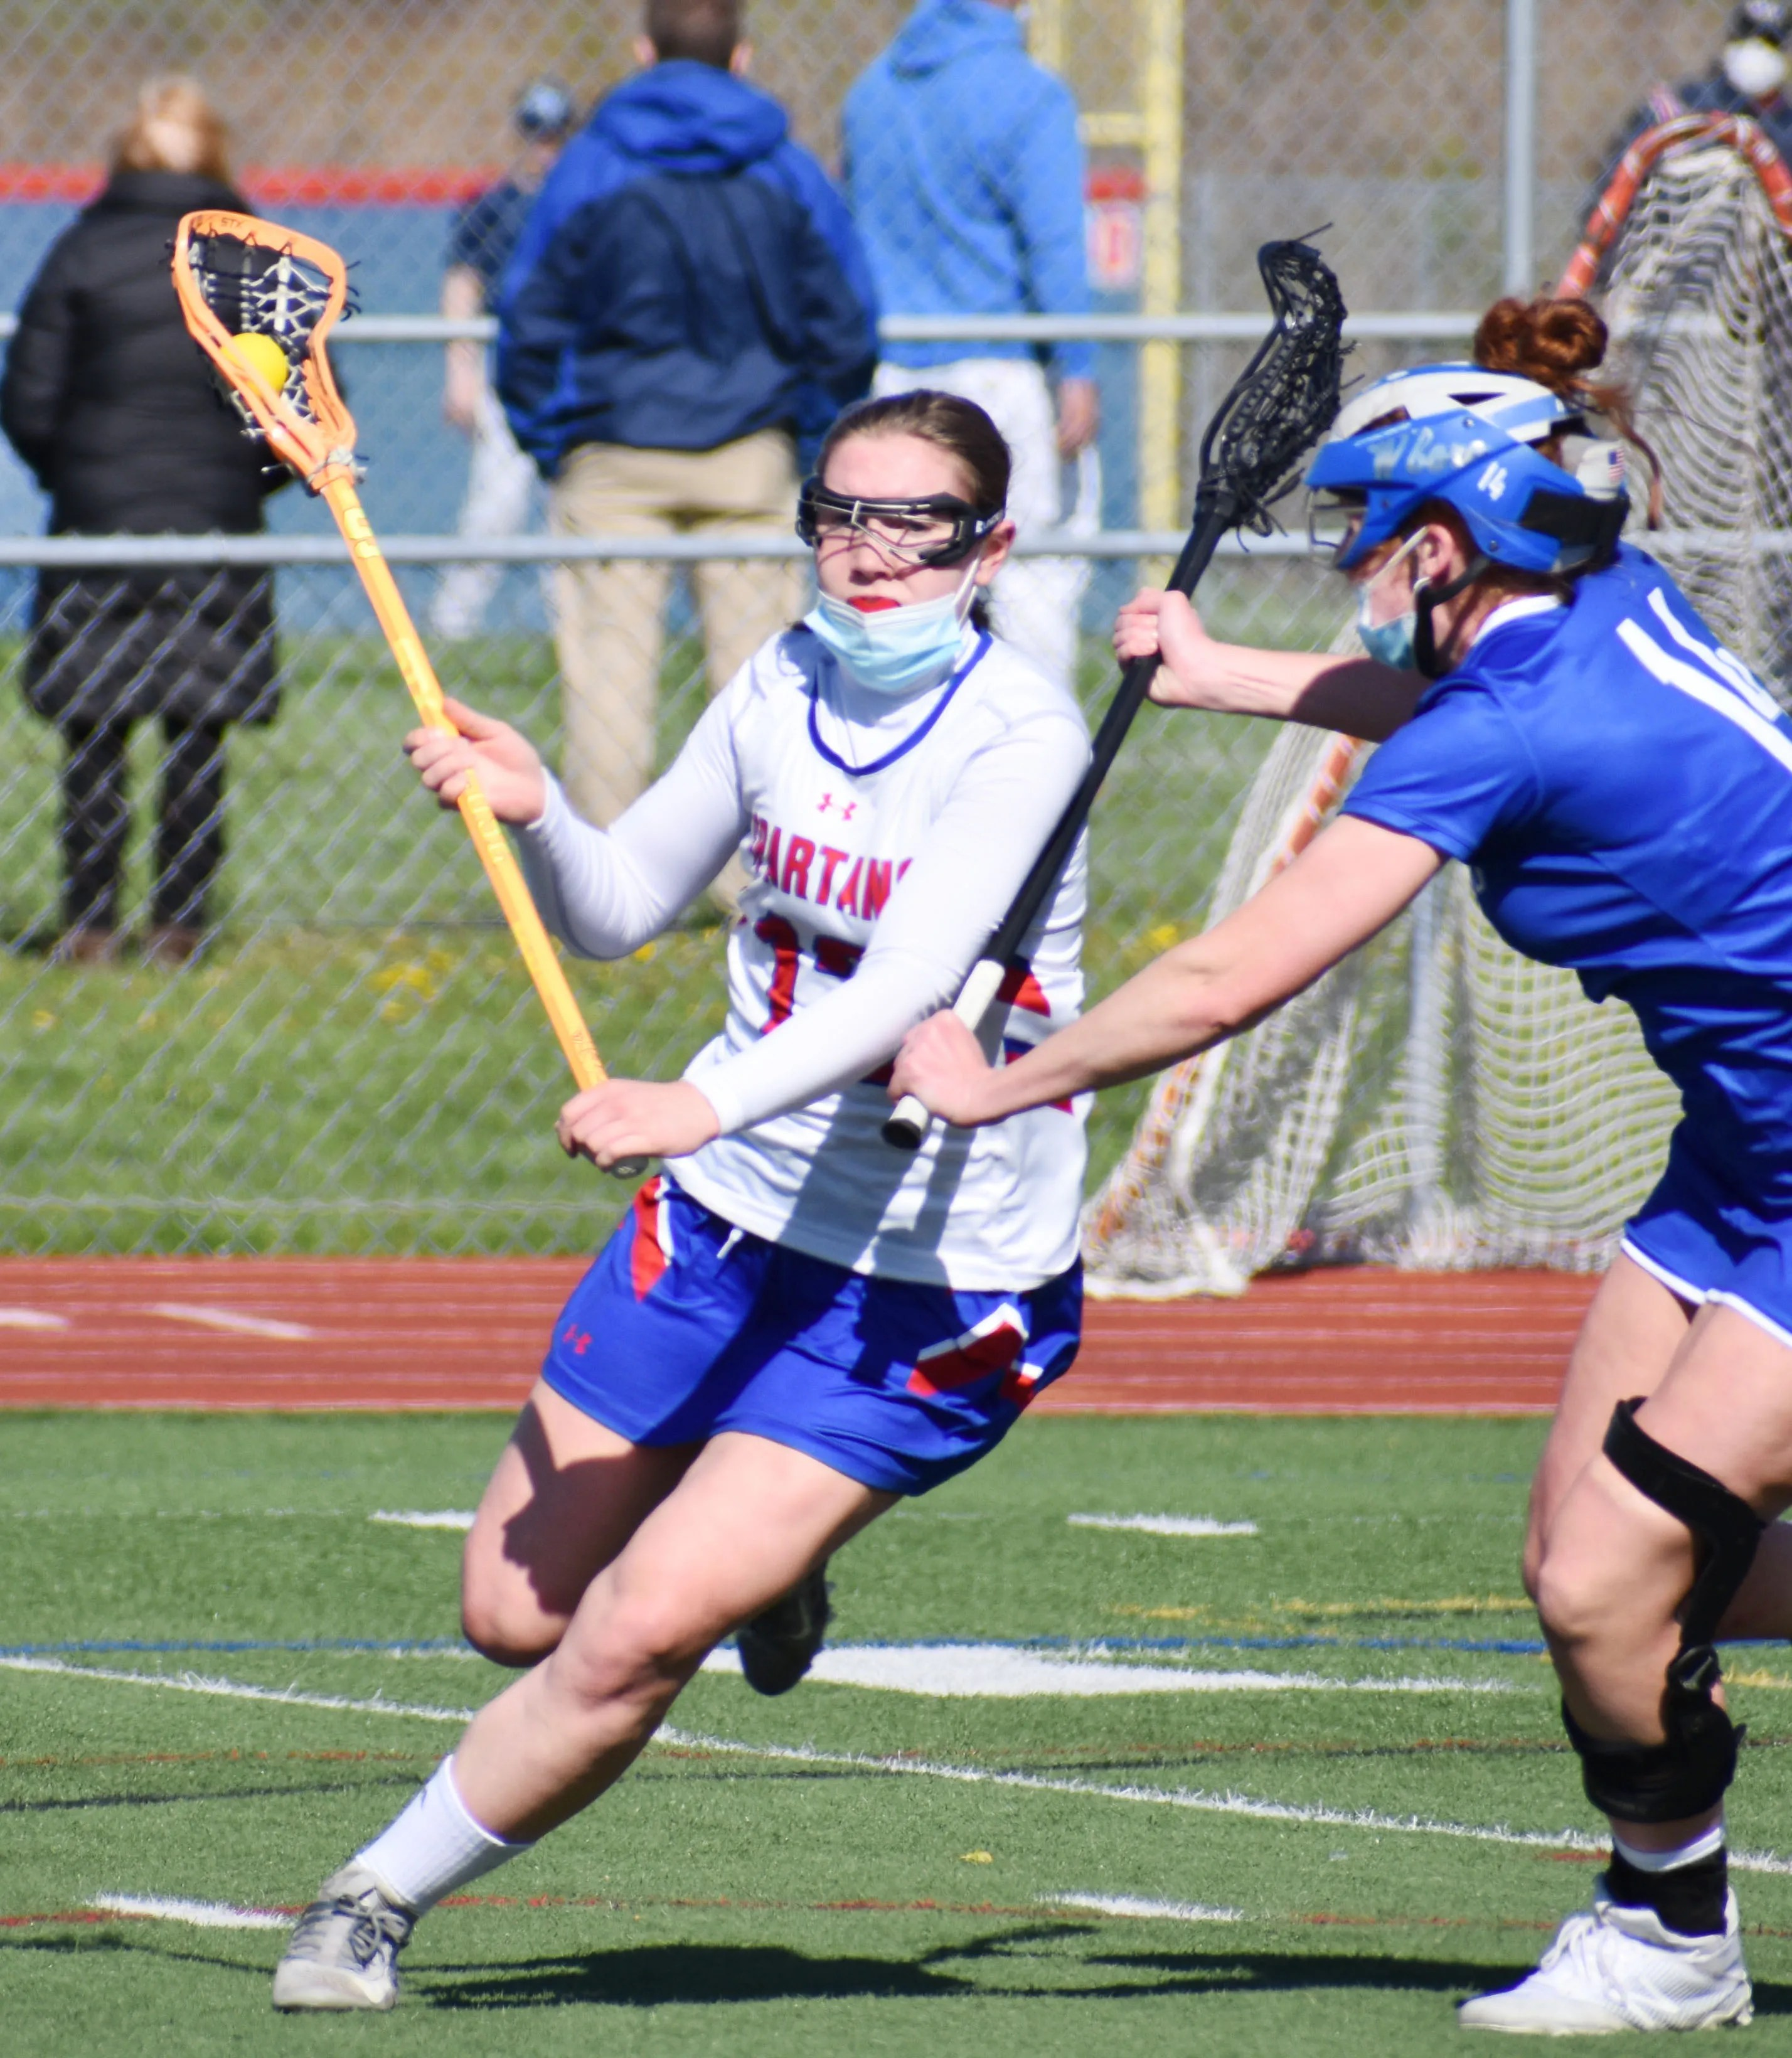 New Hartford's Maia Herring, left, makes a move against a Whitesboro player on Tuesday at Don Edick Field in New Hartford. Herring had three goals in New Hartford's 11-6 win.